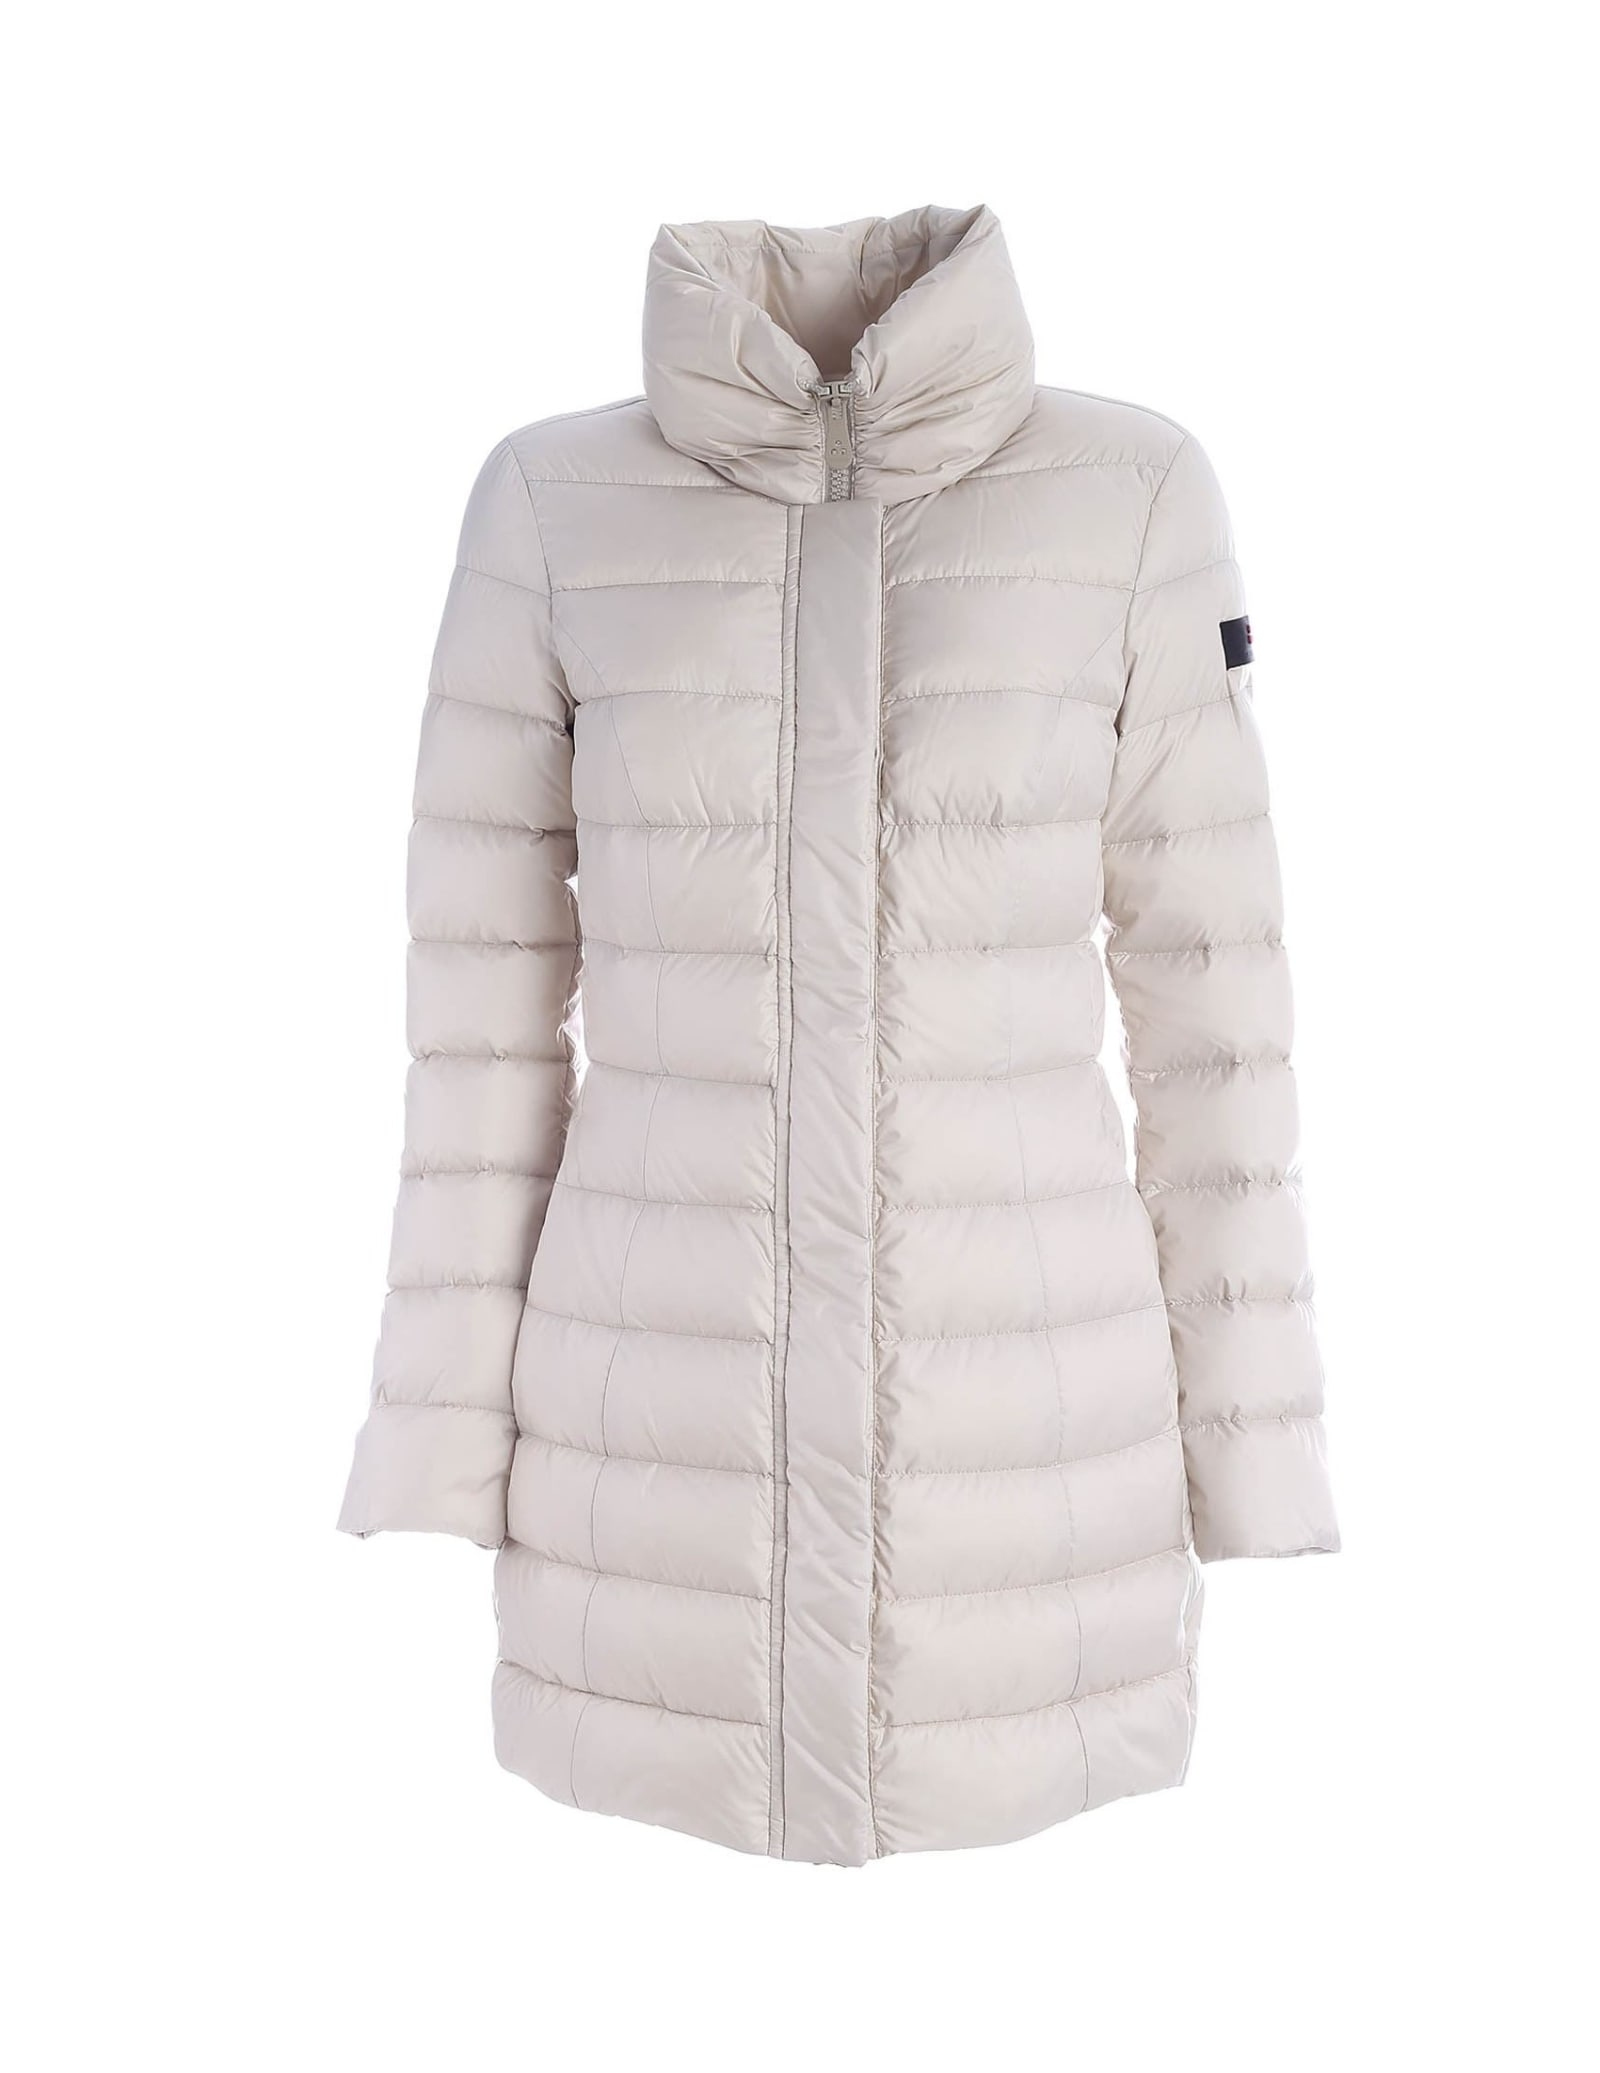 Peuterey Sobchak Down Jacket With High Neck Beige Color